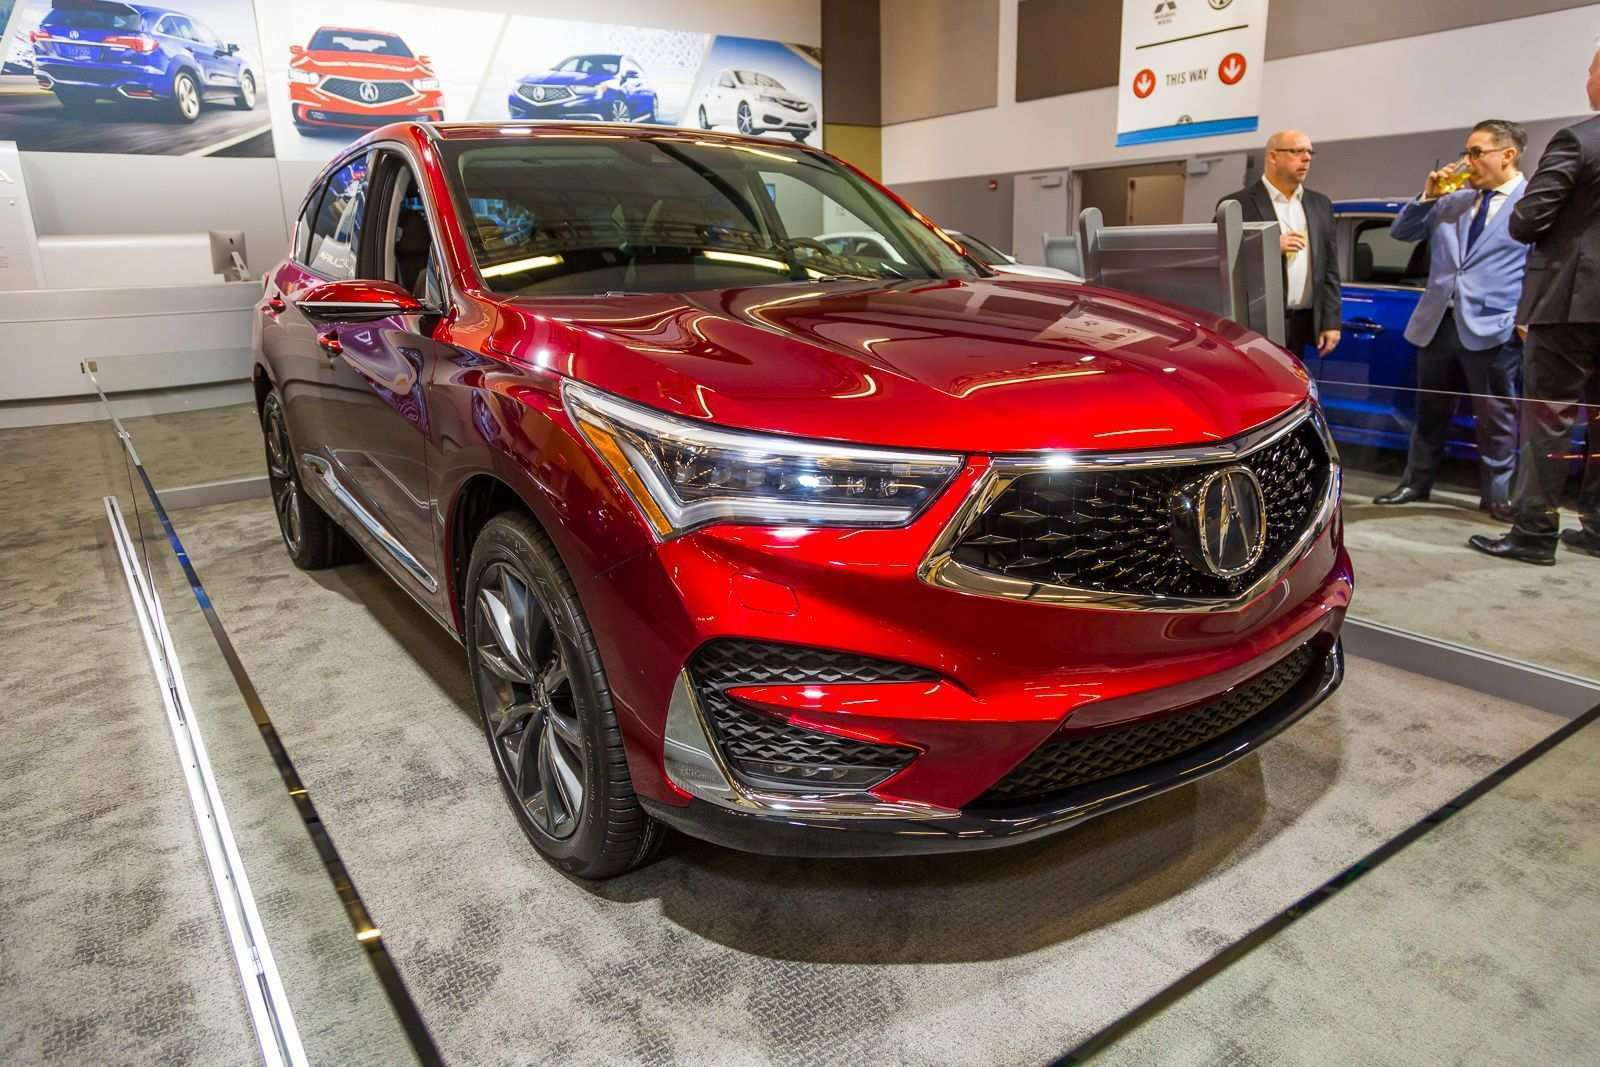 49 Great The Acura Rdx 2019 Release Date Usa Spy Shoot Images with The Acura Rdx 2019 Release Date Usa Spy Shoot